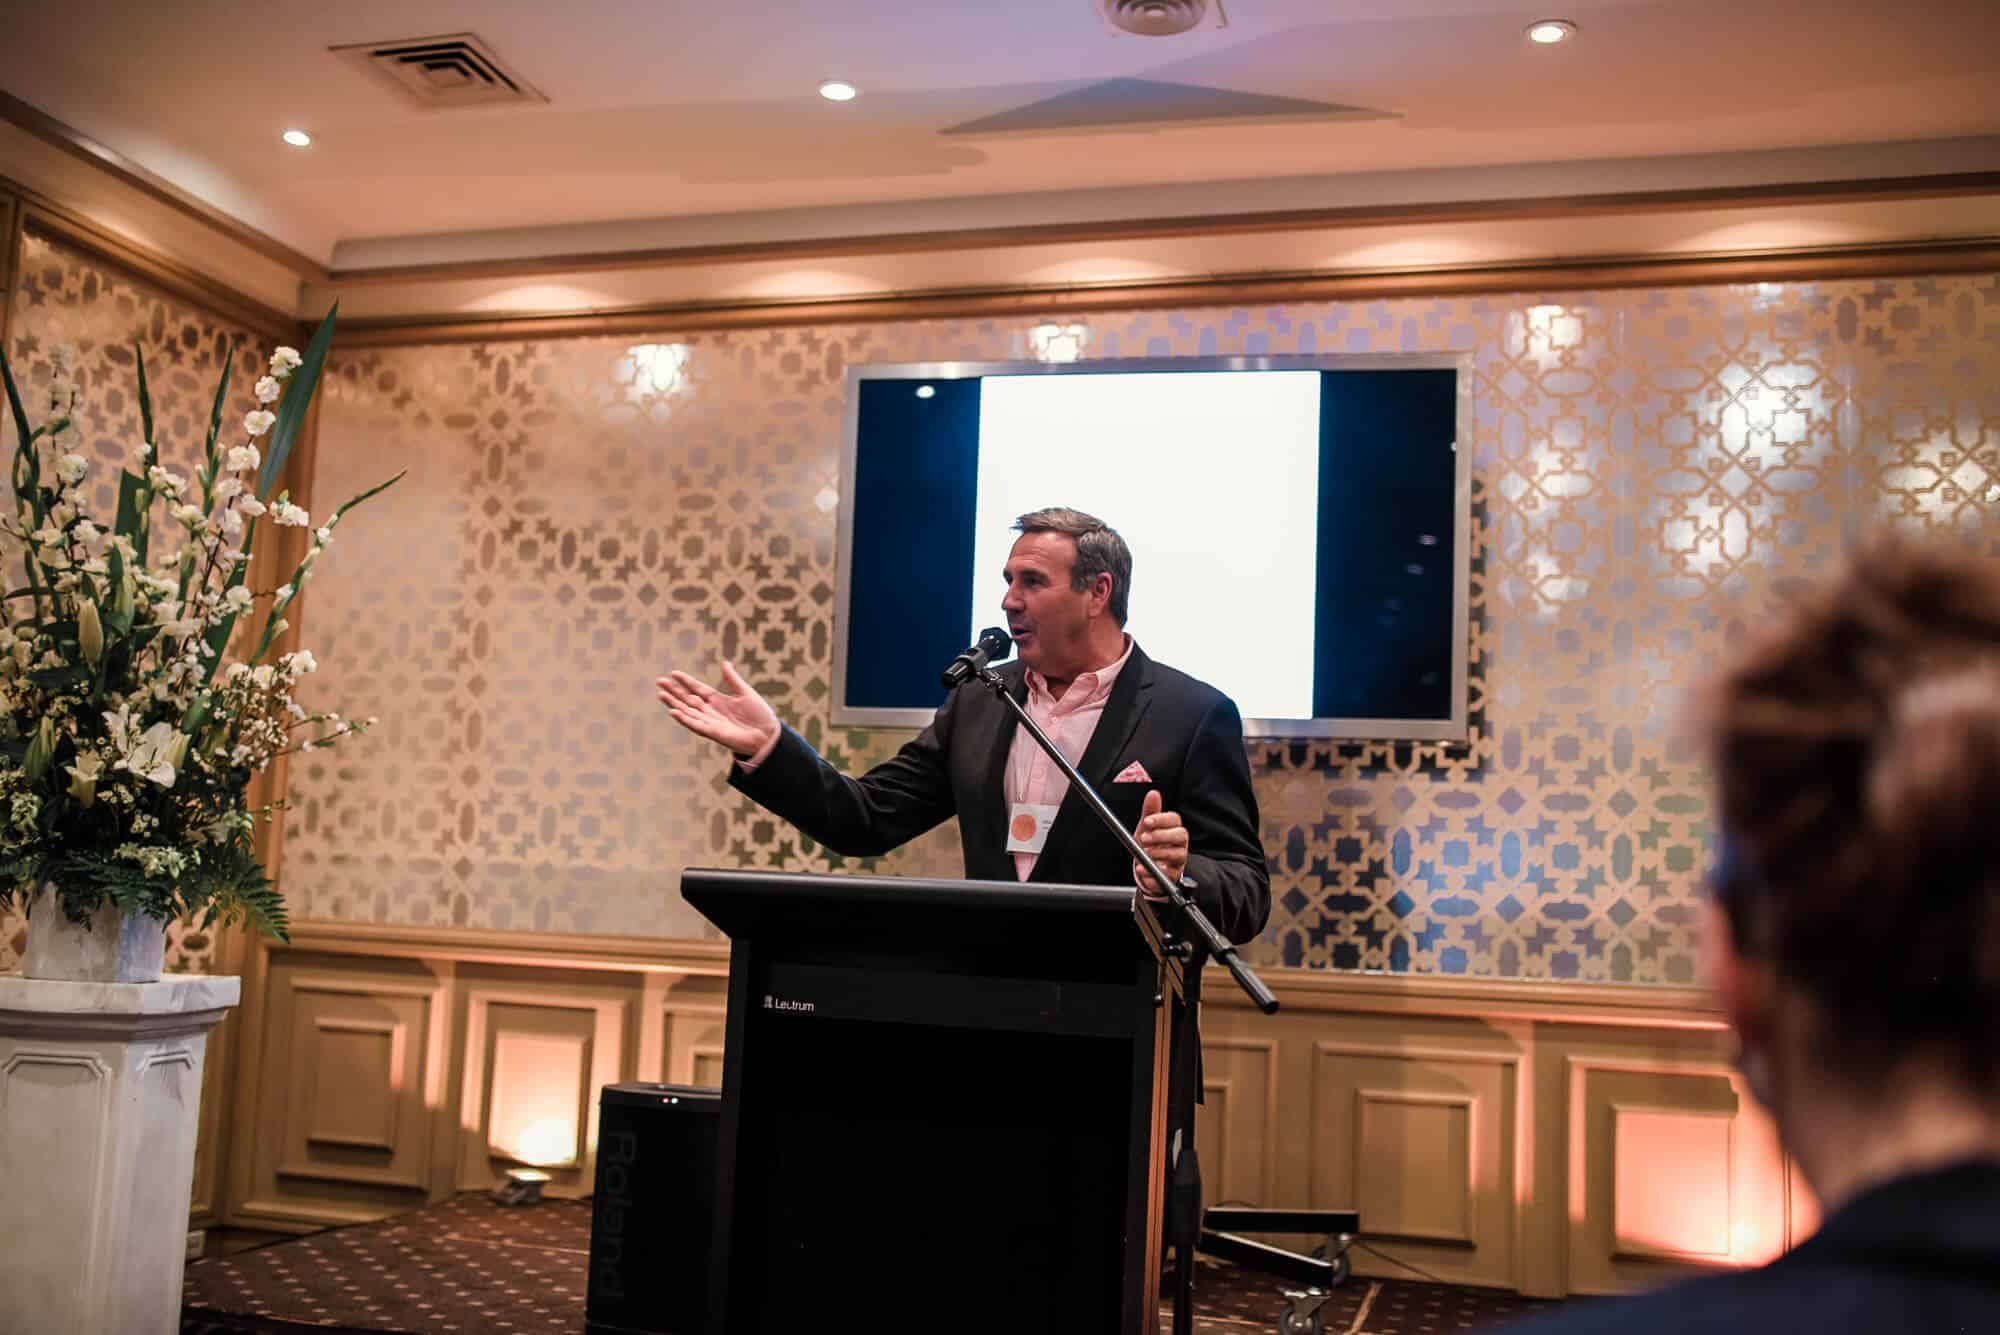 mike-larkan-speaker-wedding-industry-network-events-brighton-savoy